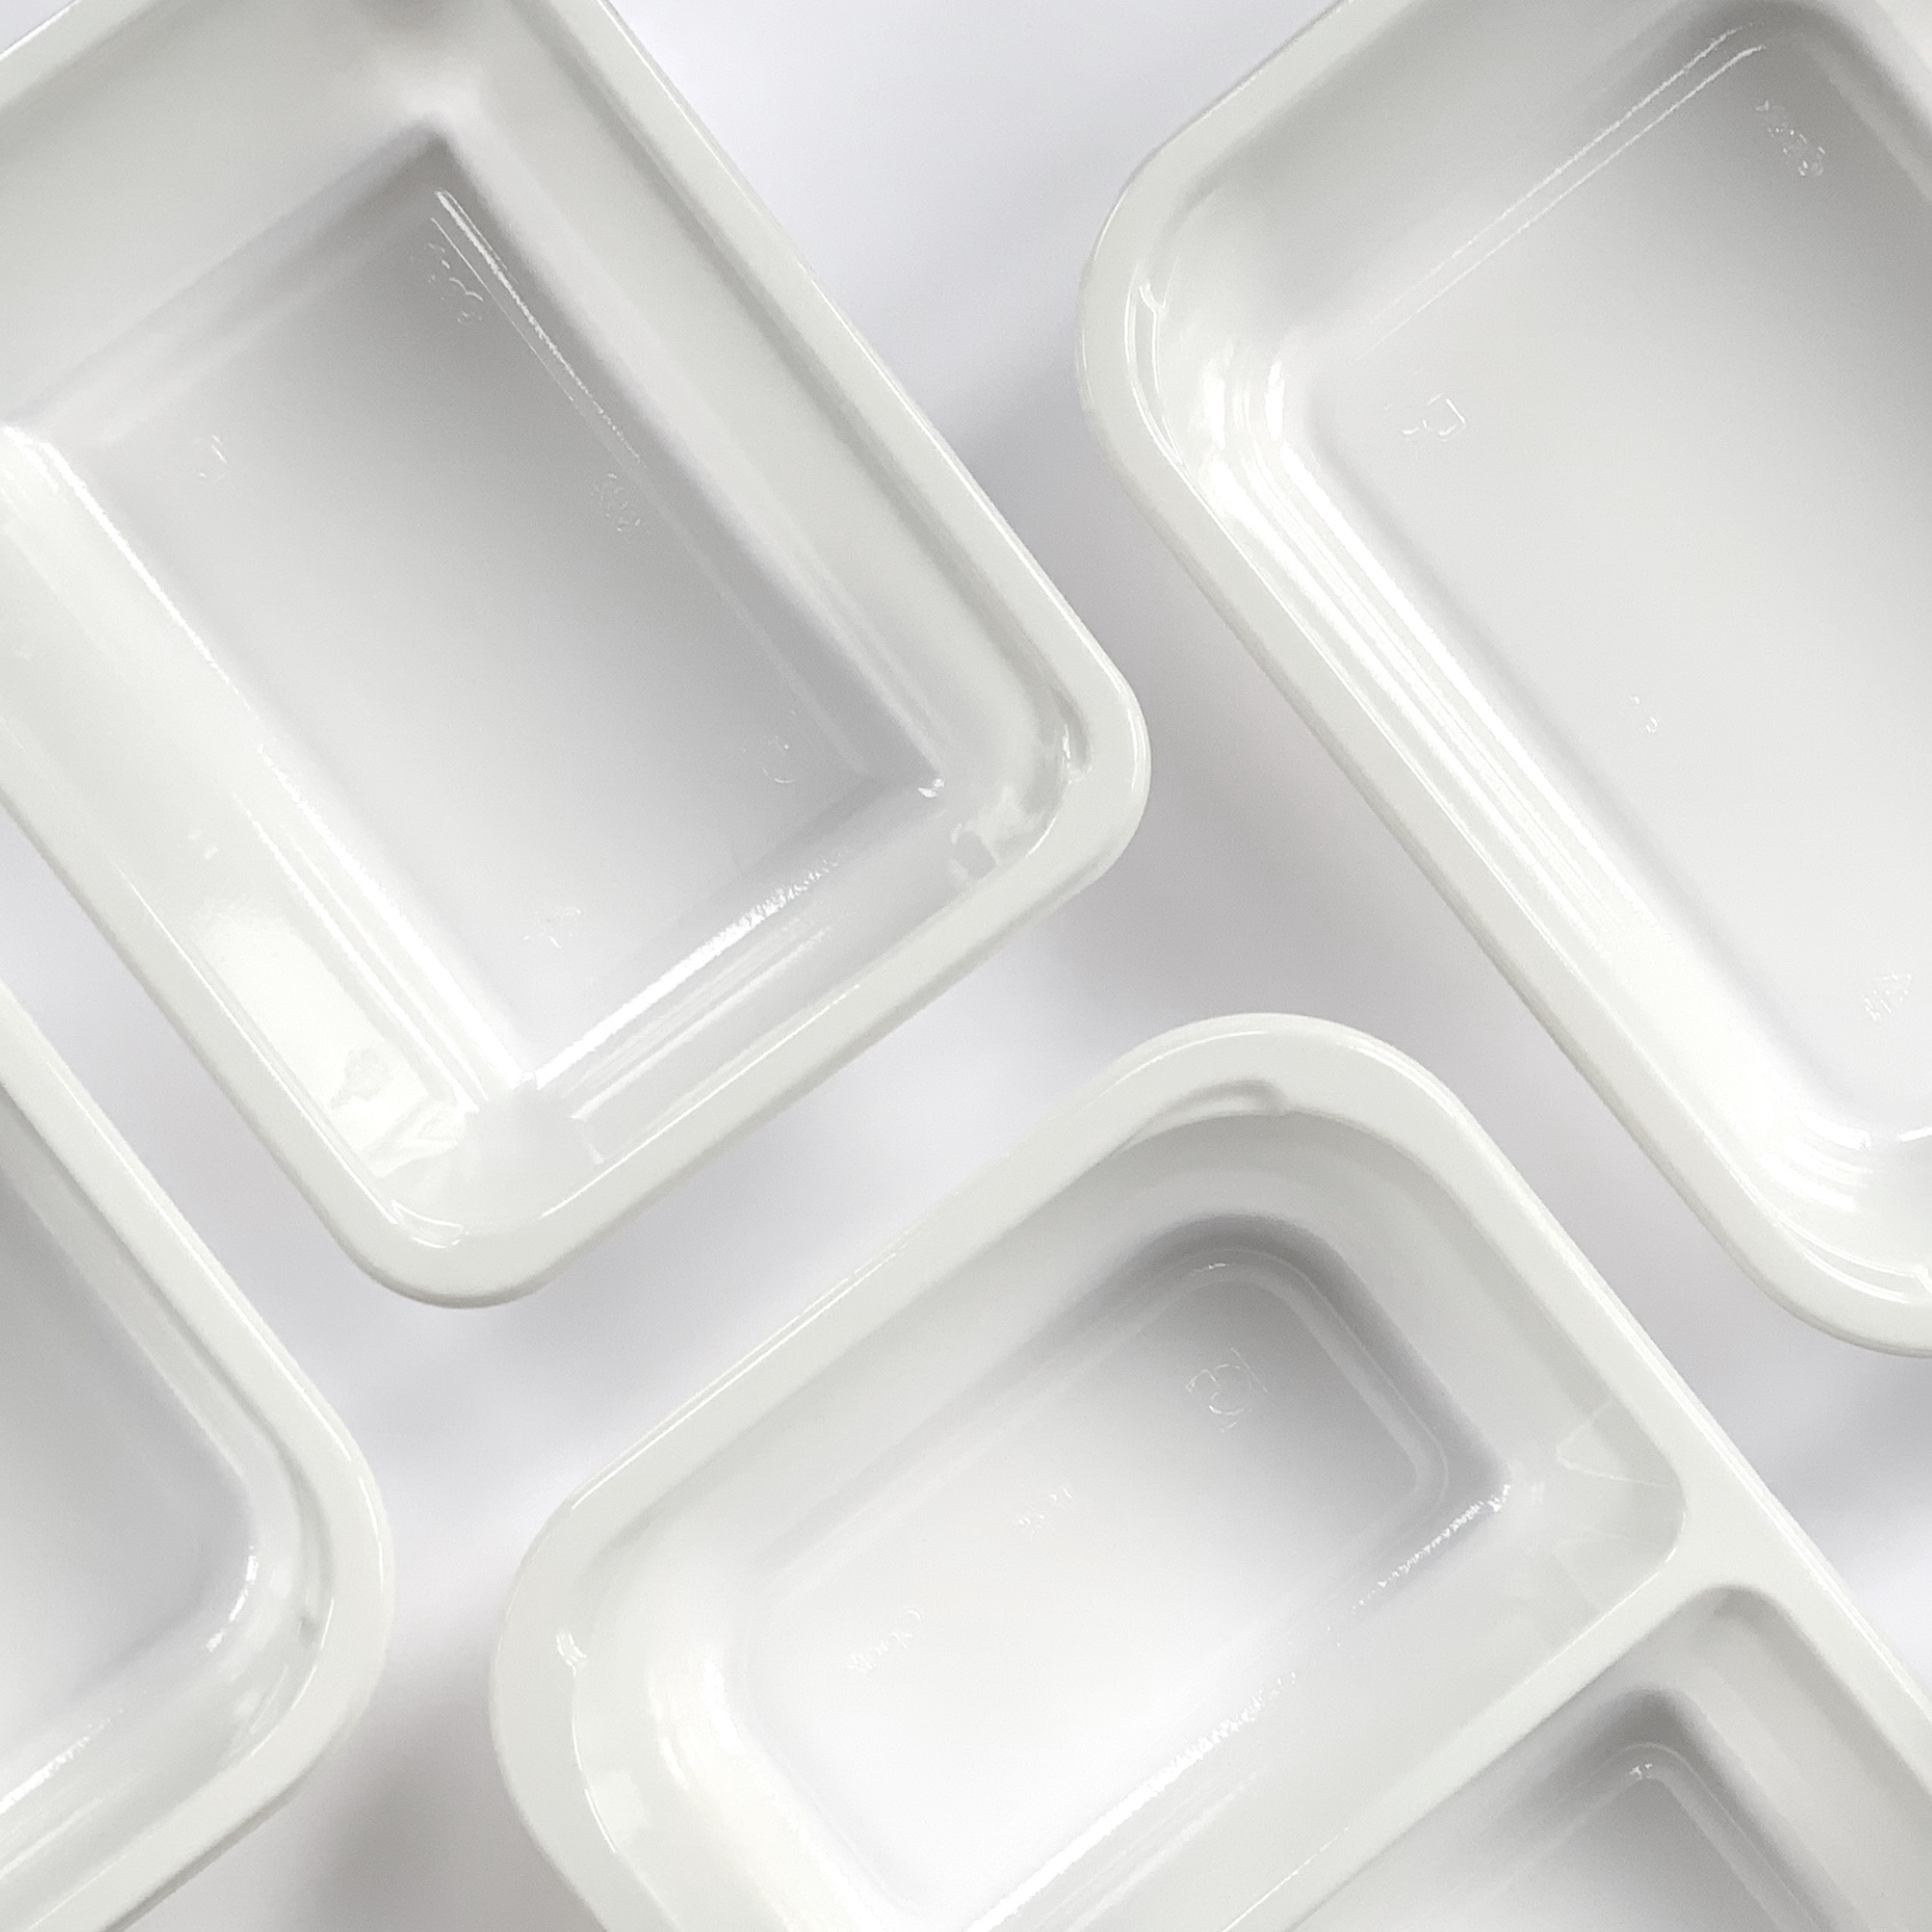 Opaque Ready Meal Trays